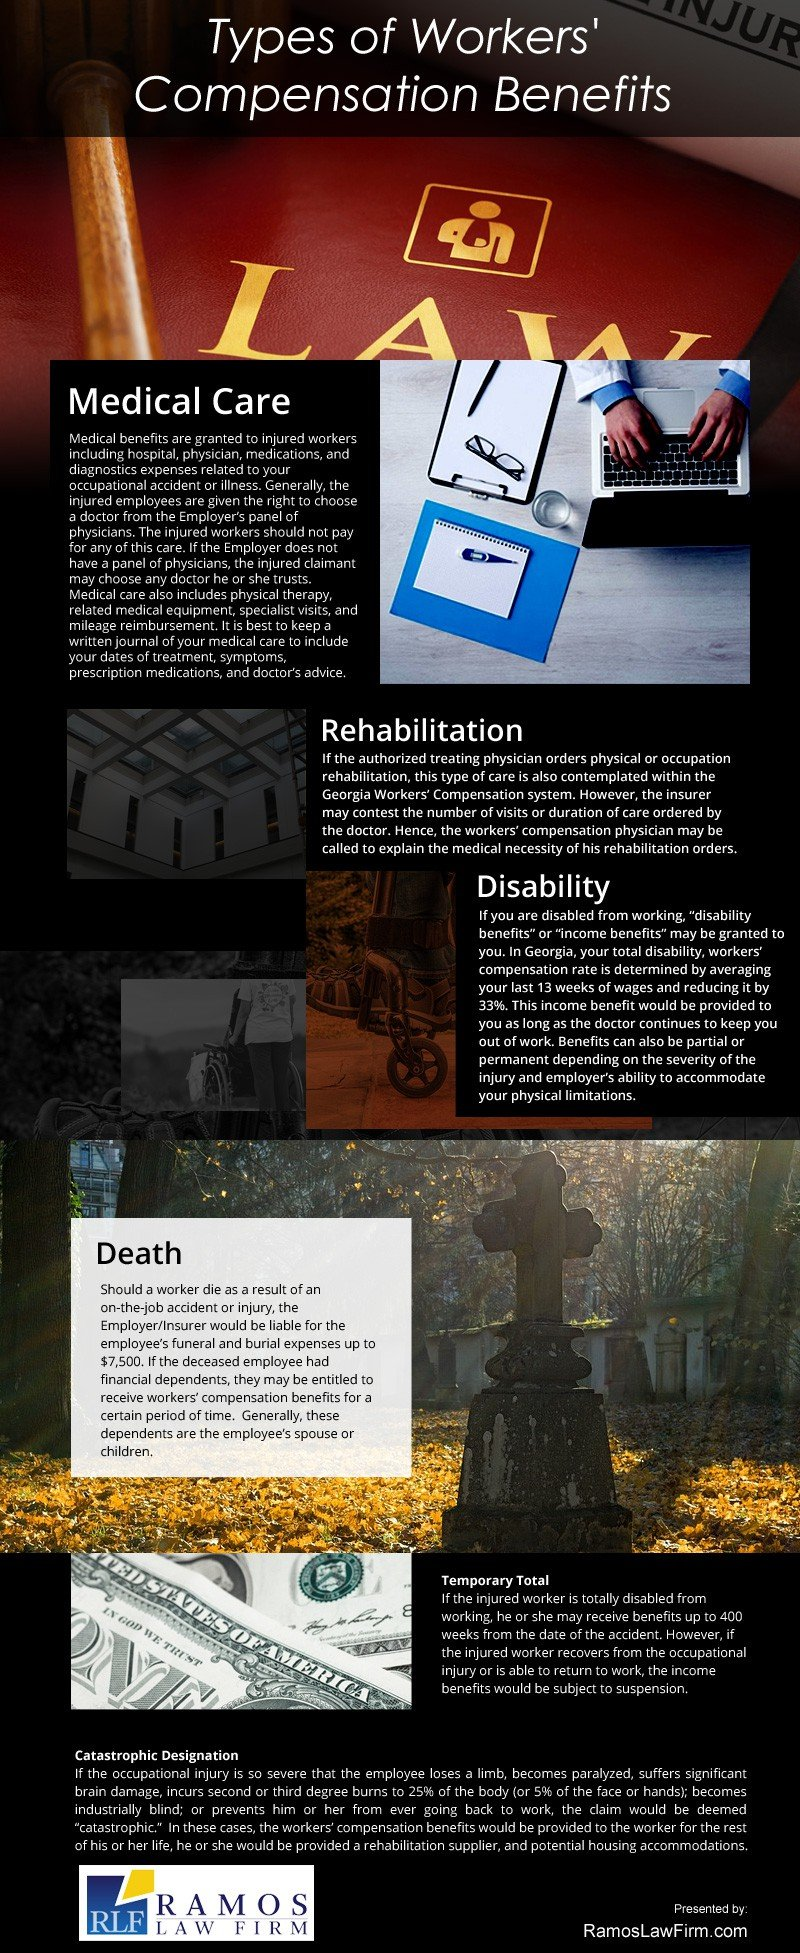 Types of Workers' Compensation Benefits [infographic]